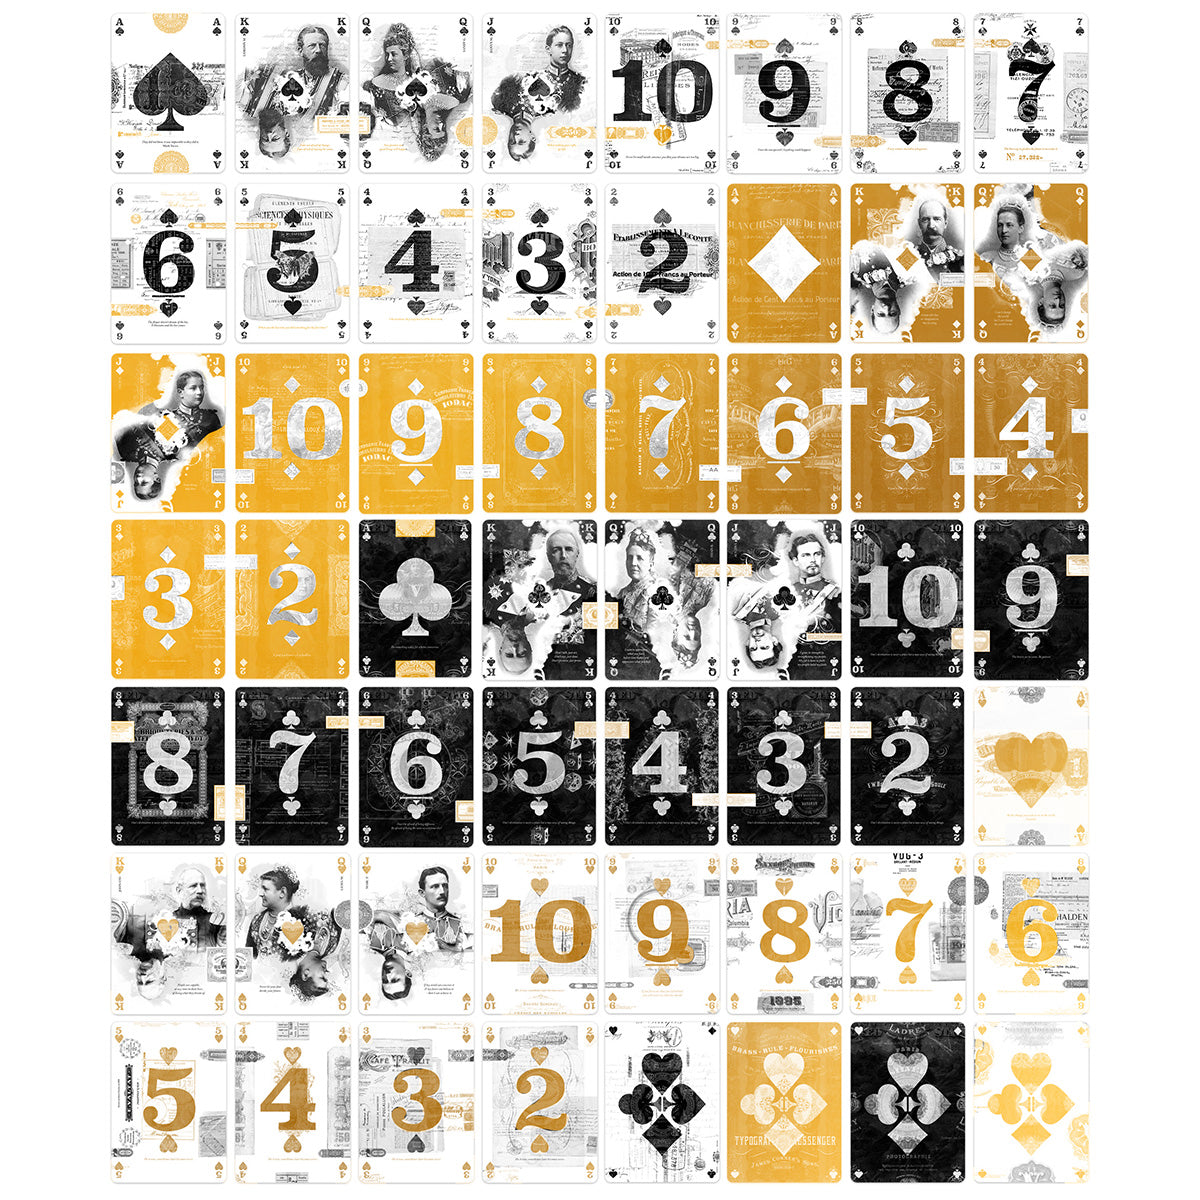 EPHEMERID playings cards - GOLD edition - MR CUP